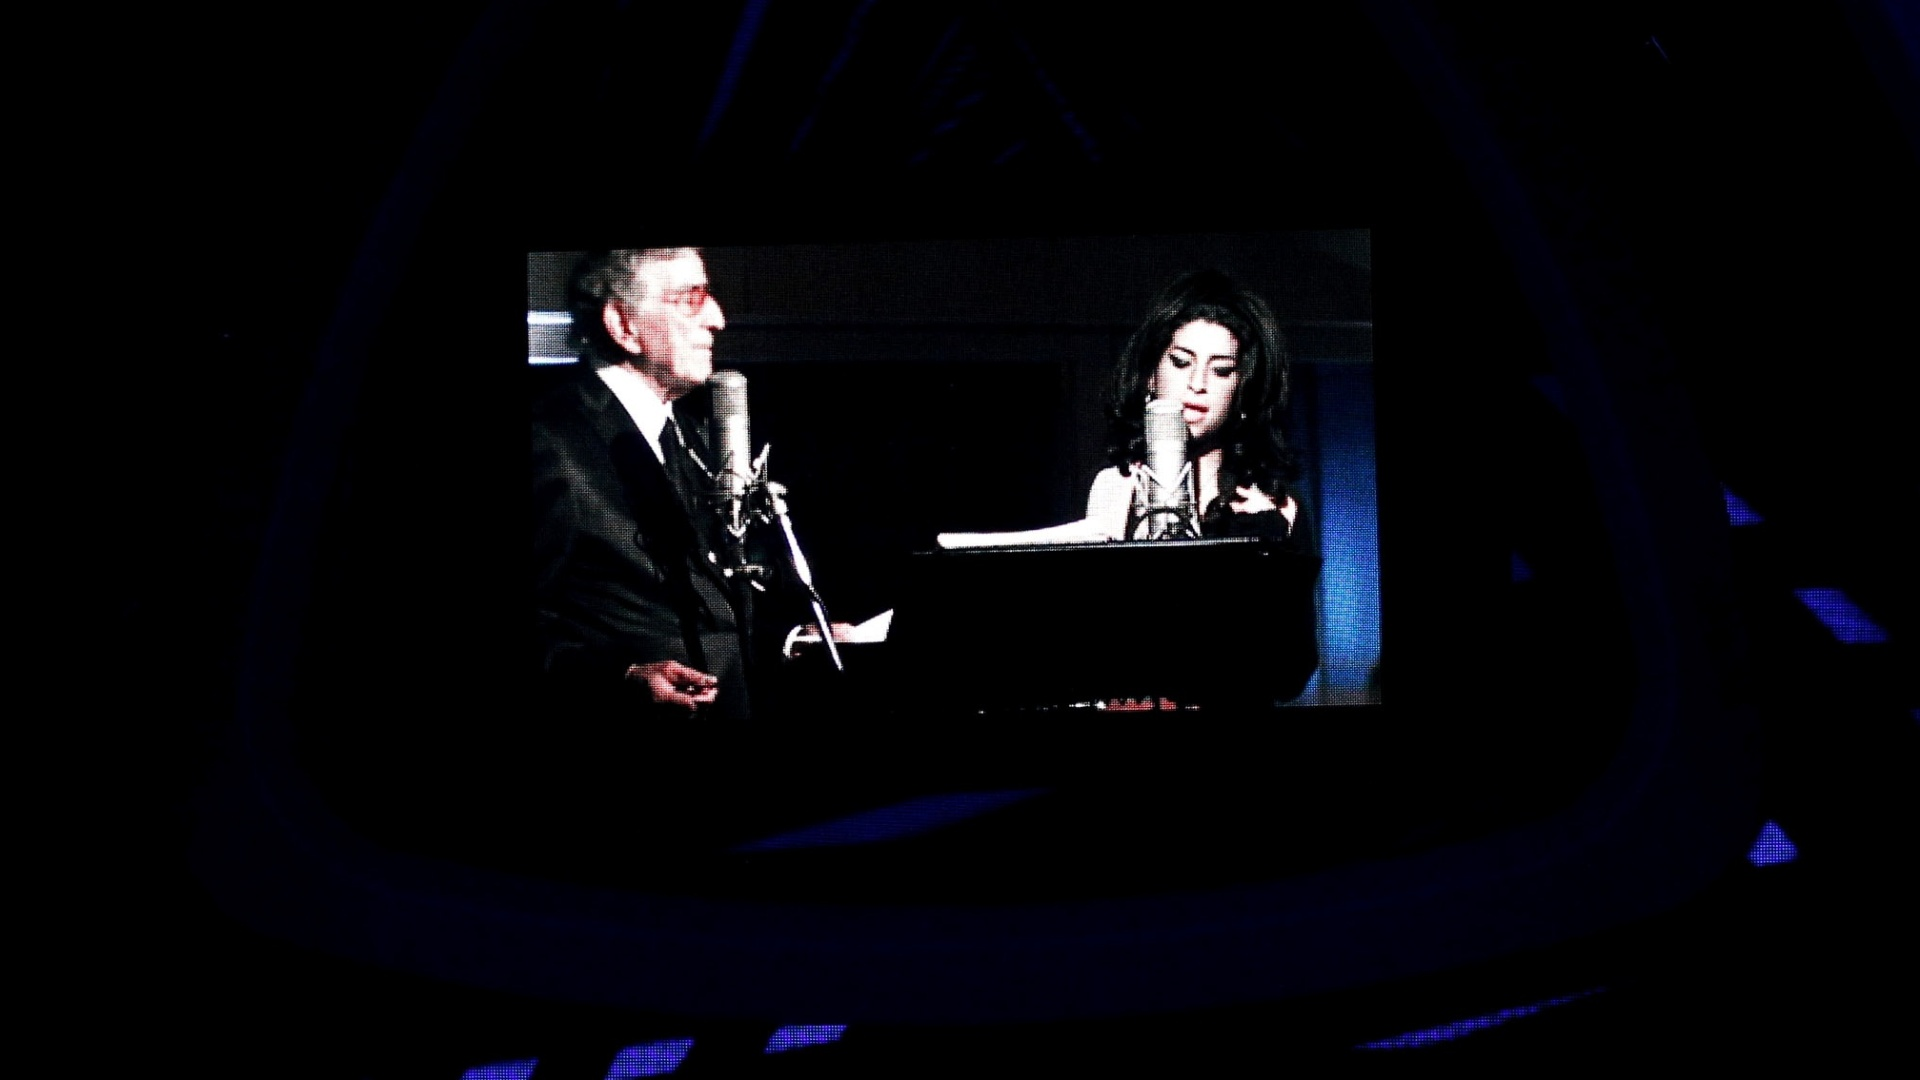 Tony Bennett canta com Amy Winehouse em vídeo exibido no telão do MTV Video Music Awards 2011 (29/08/2011)